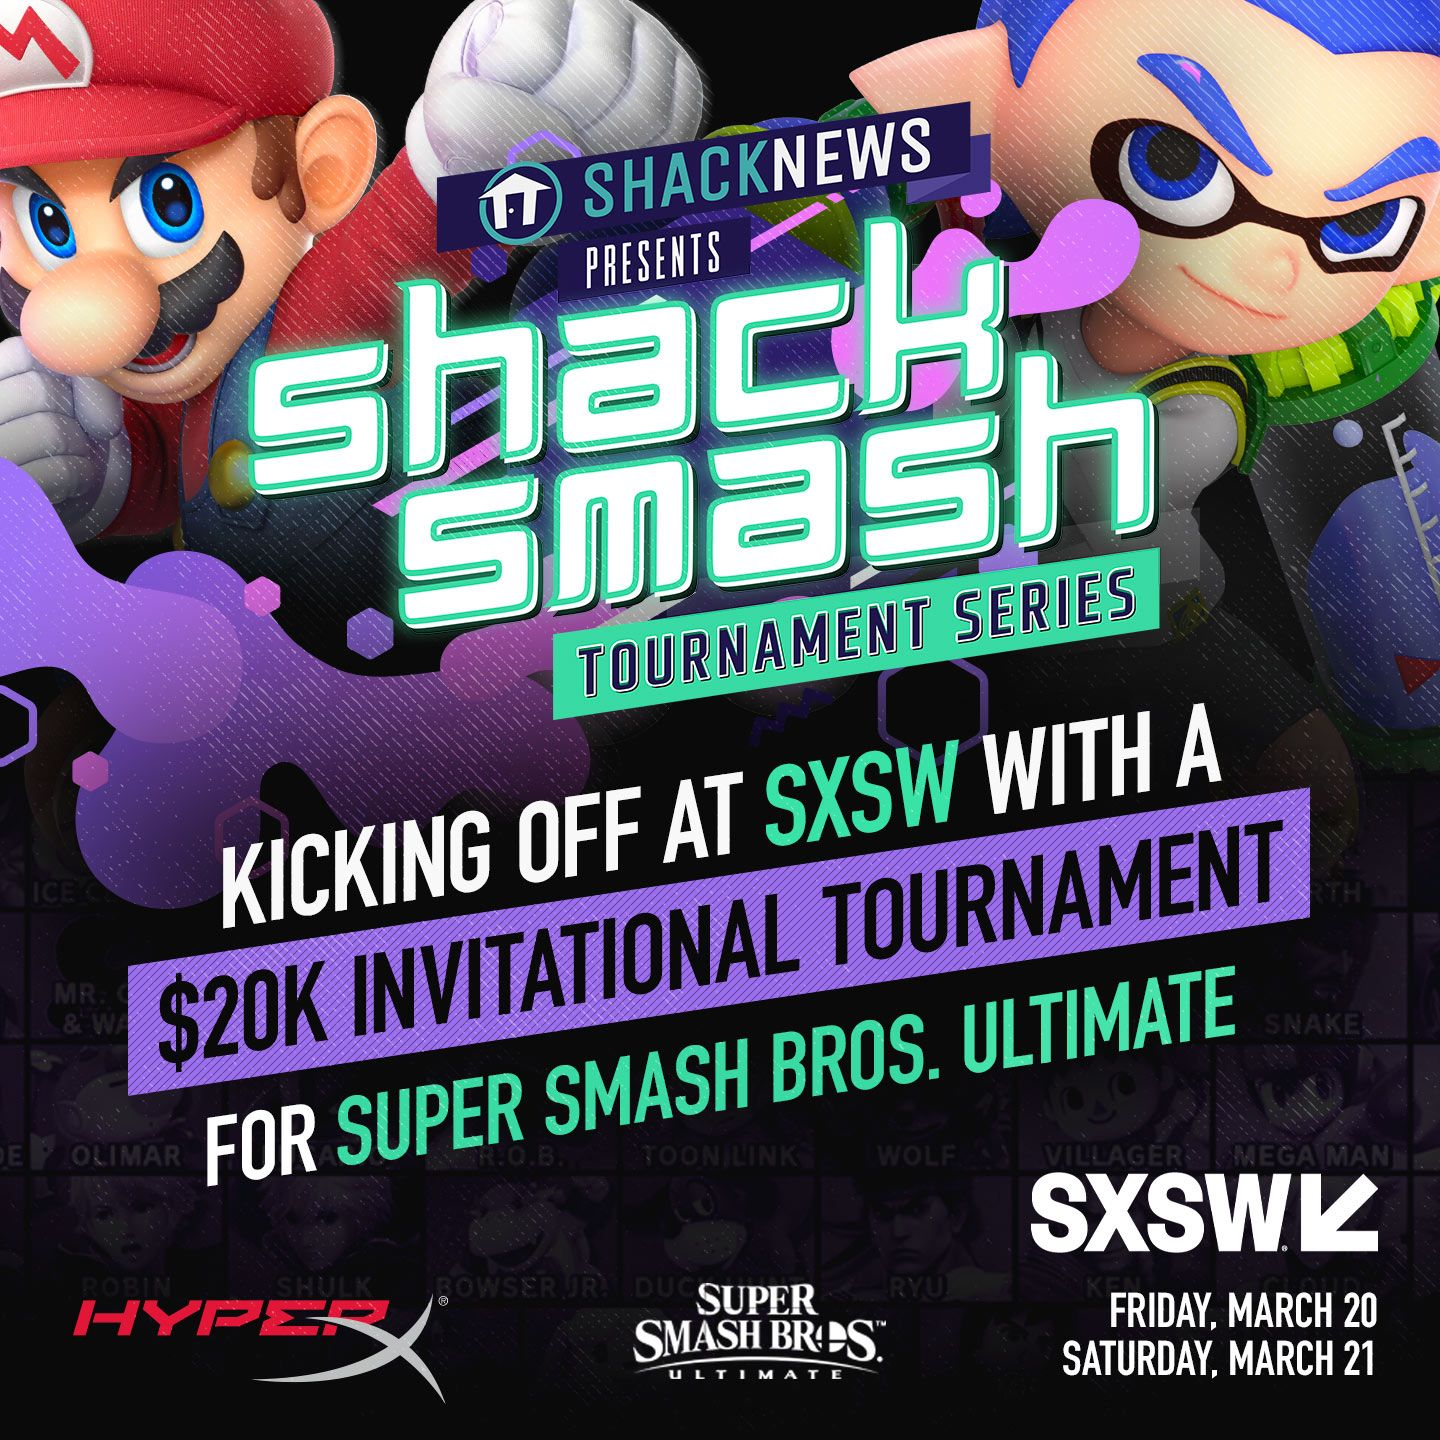 Shack Smash SXSW 2020 Hype Train is about to kick it into high gear!